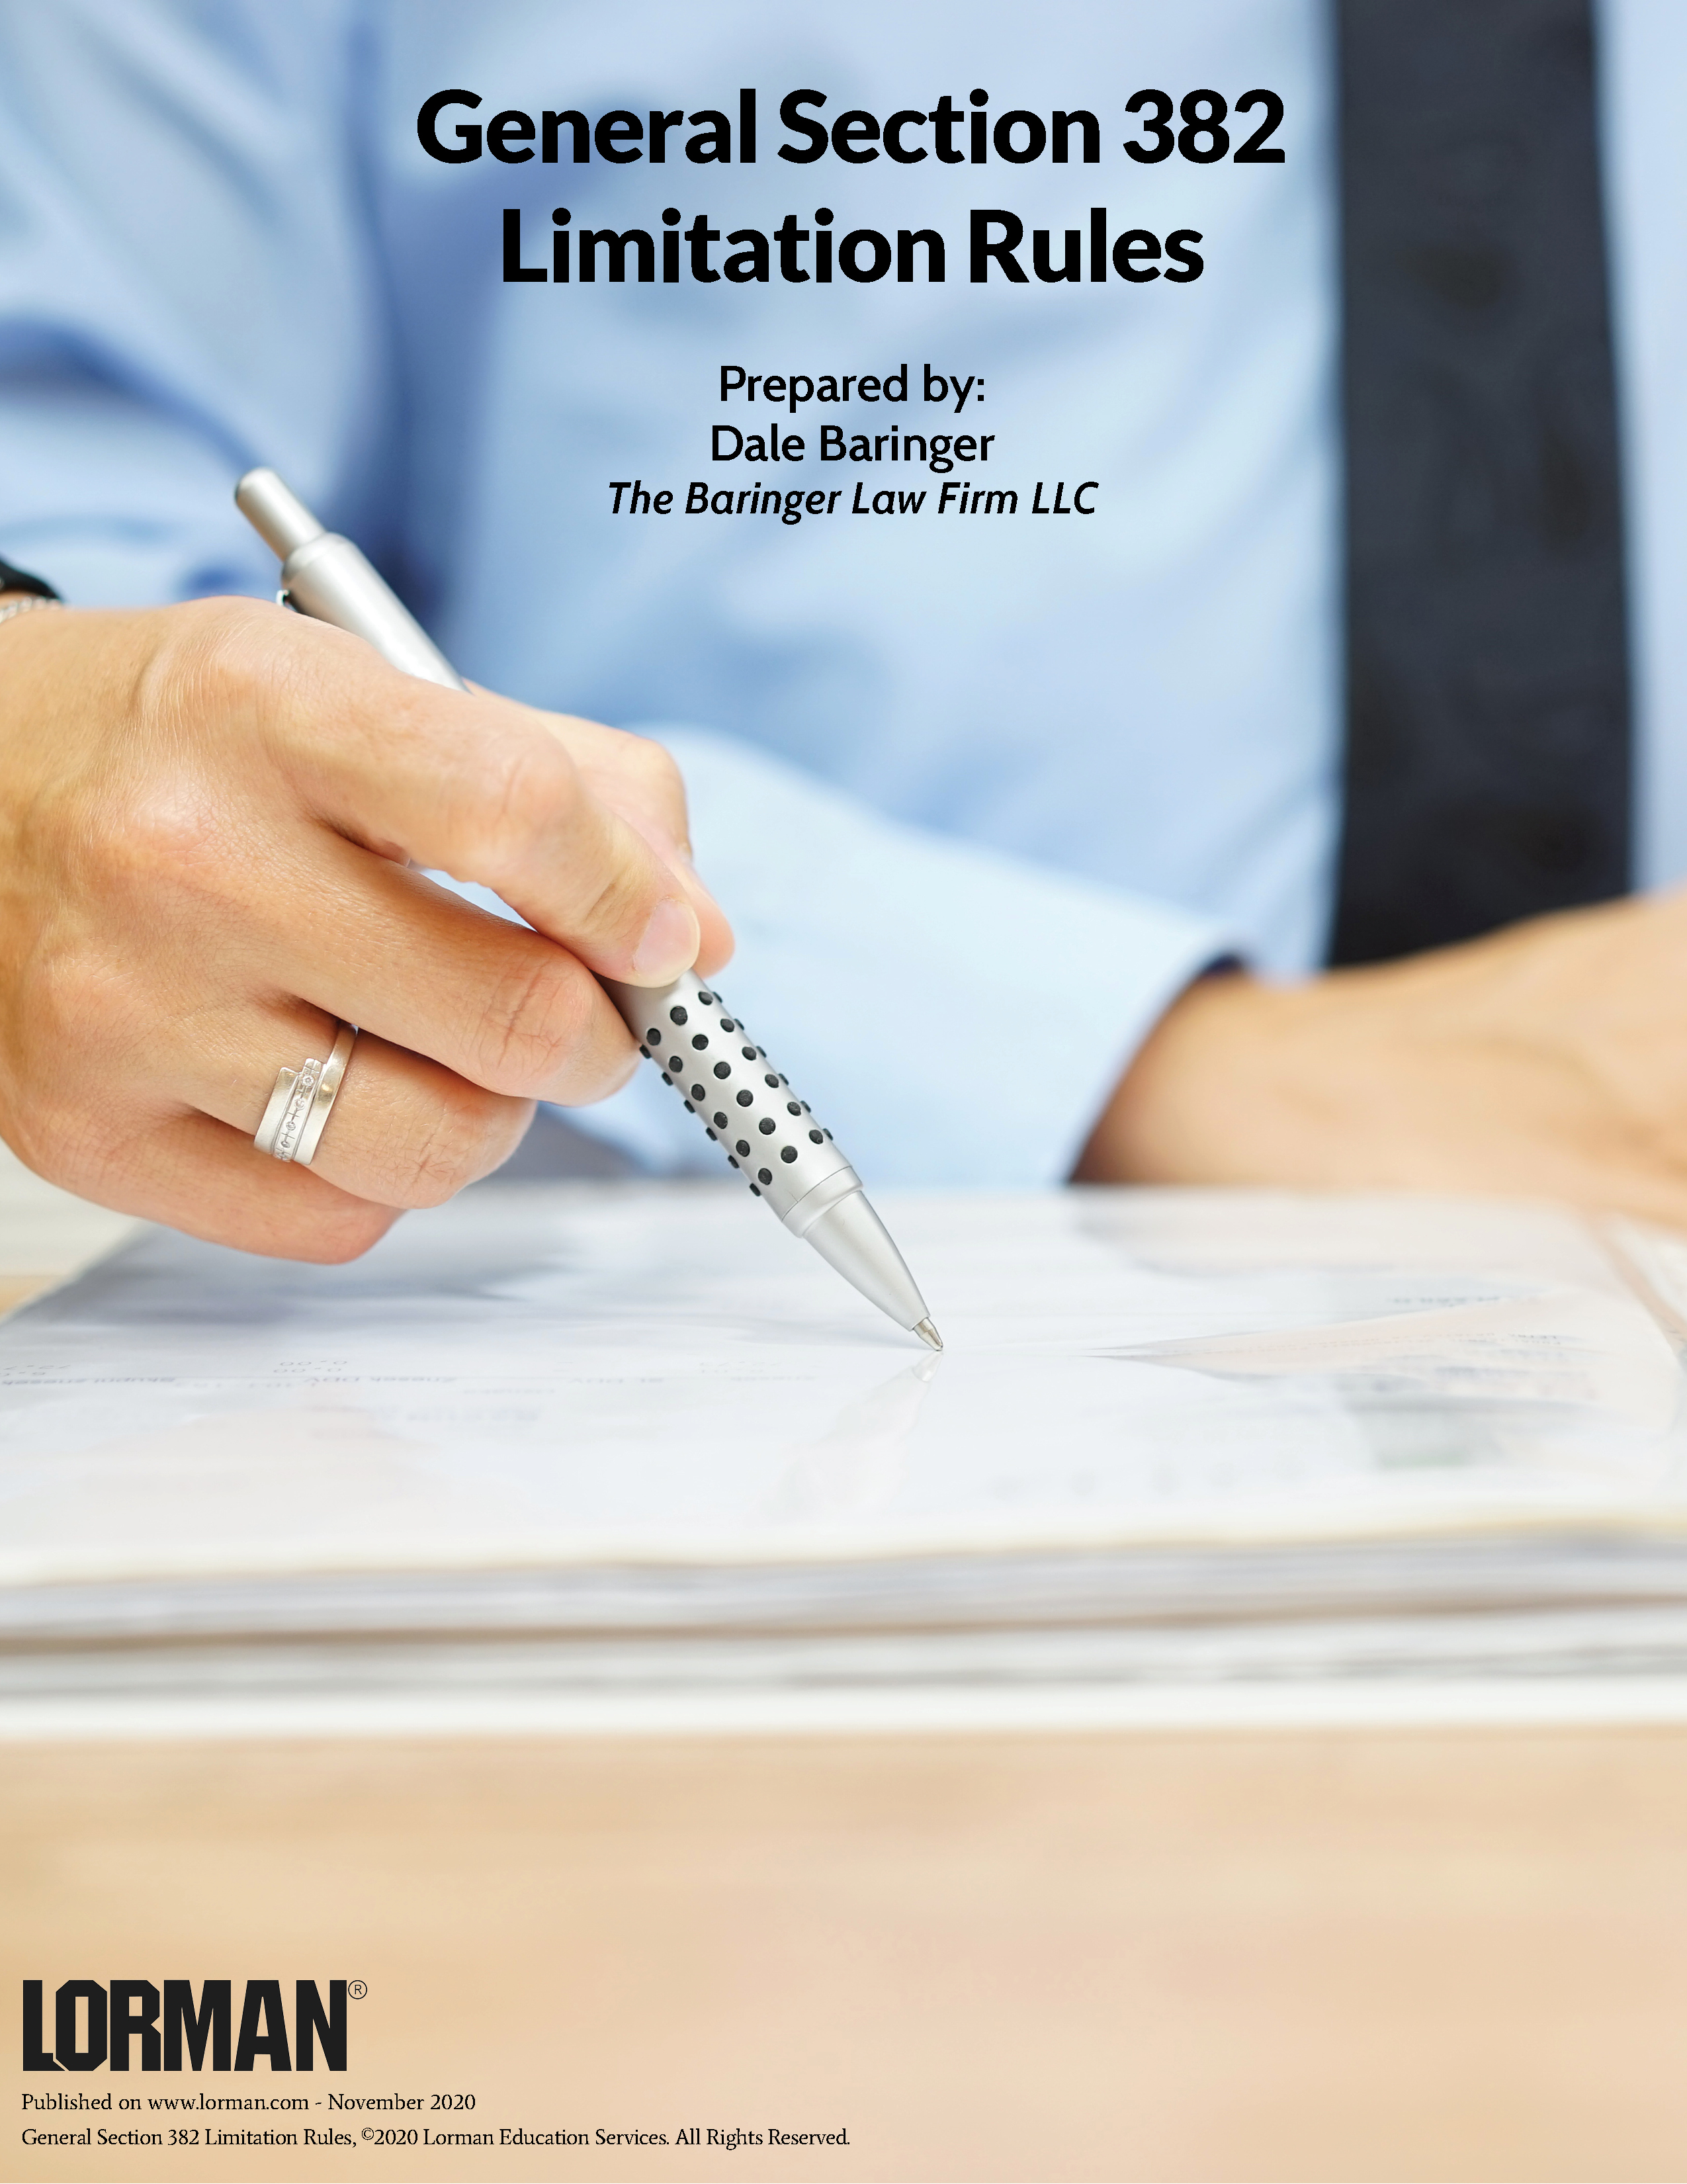 General Section 382 Limitation Rules